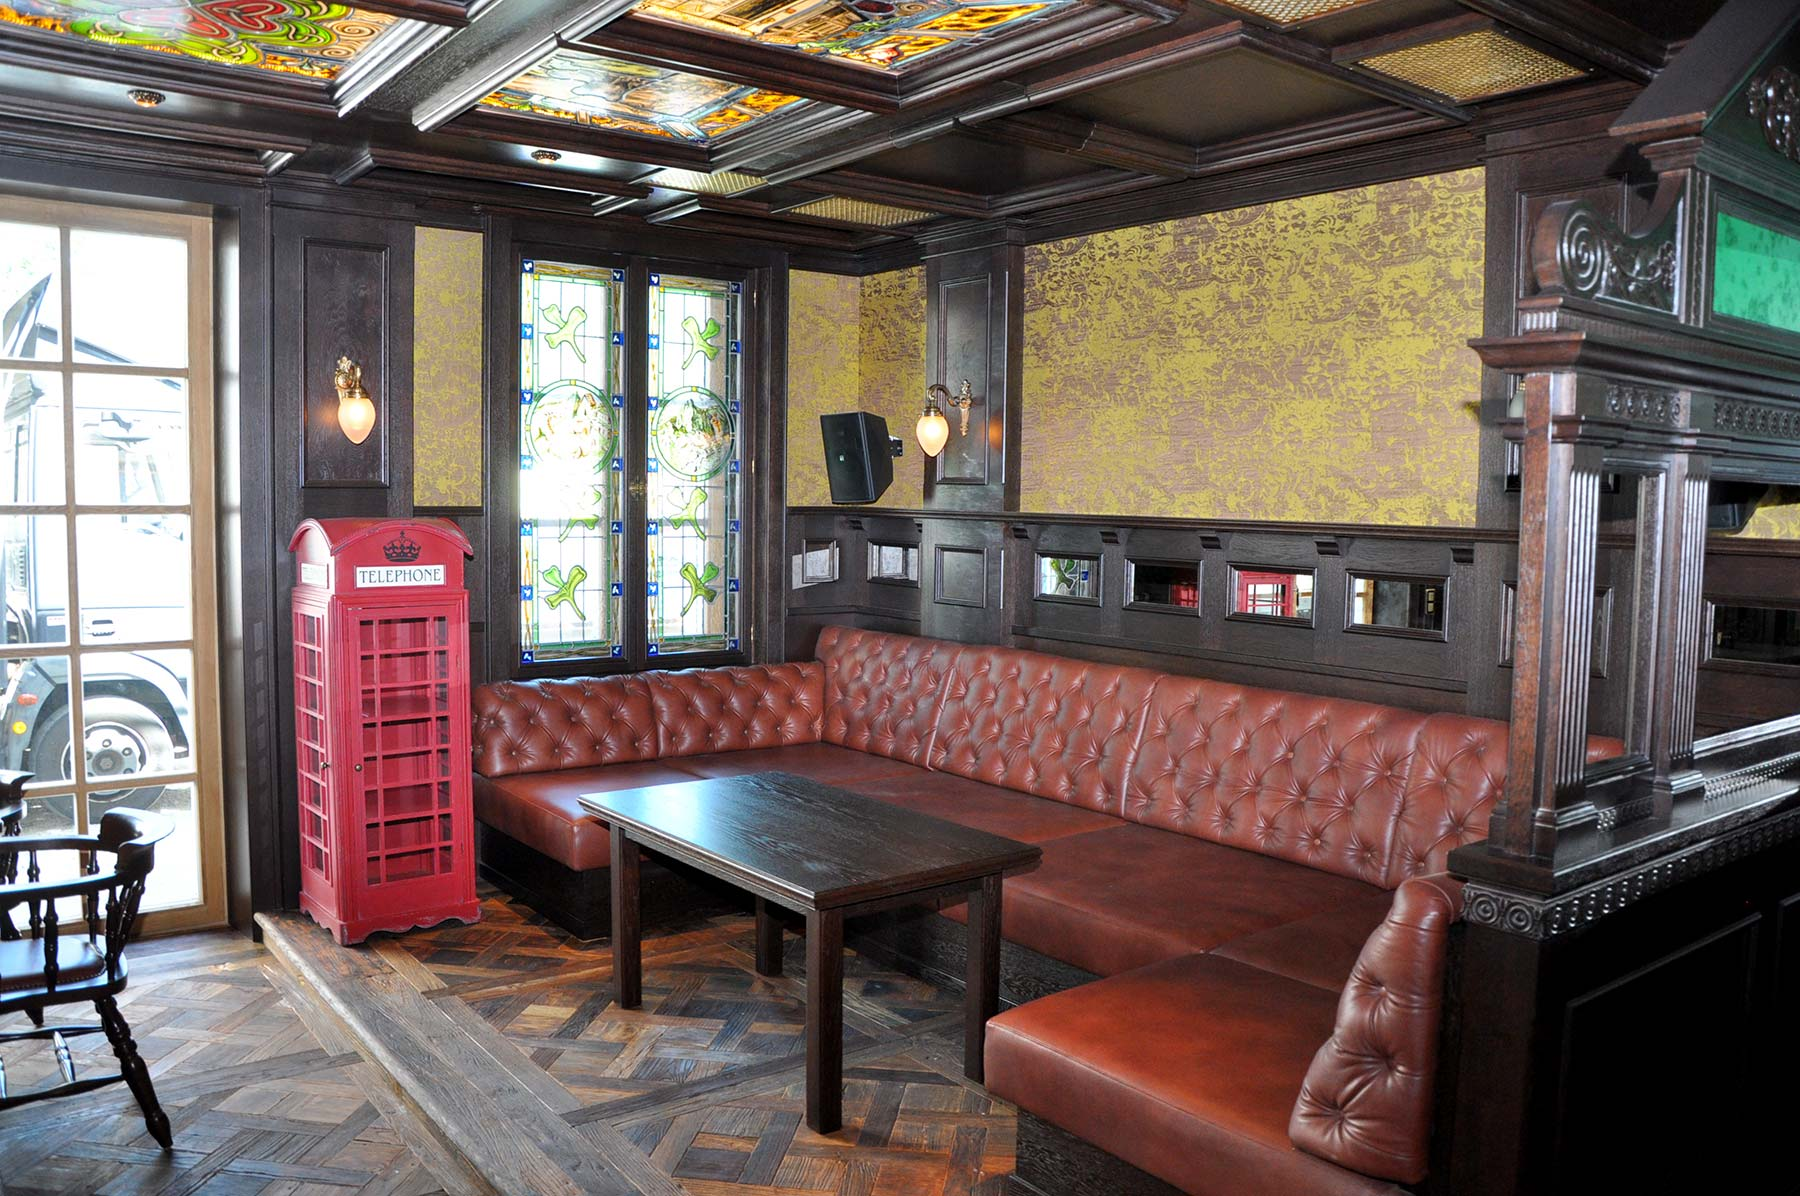 stilgerechte raumgestaltung f r privates irish pub manhartsgruber. Black Bedroom Furniture Sets. Home Design Ideas